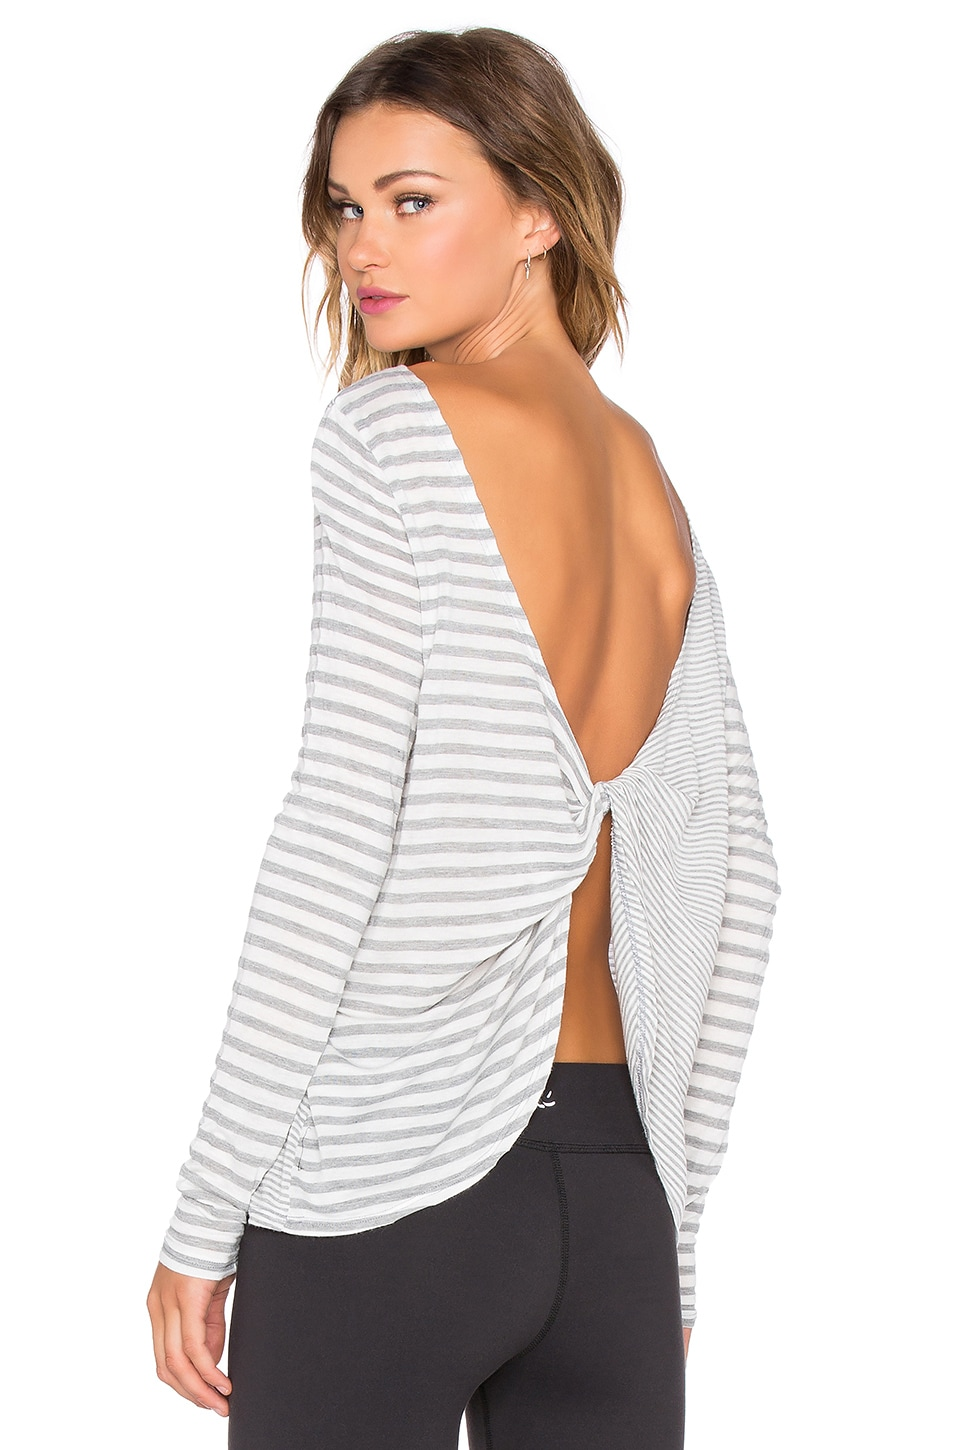 Beyond Yoga Sailing Stripe Scooped & Looped Tee in Heather Grey & White